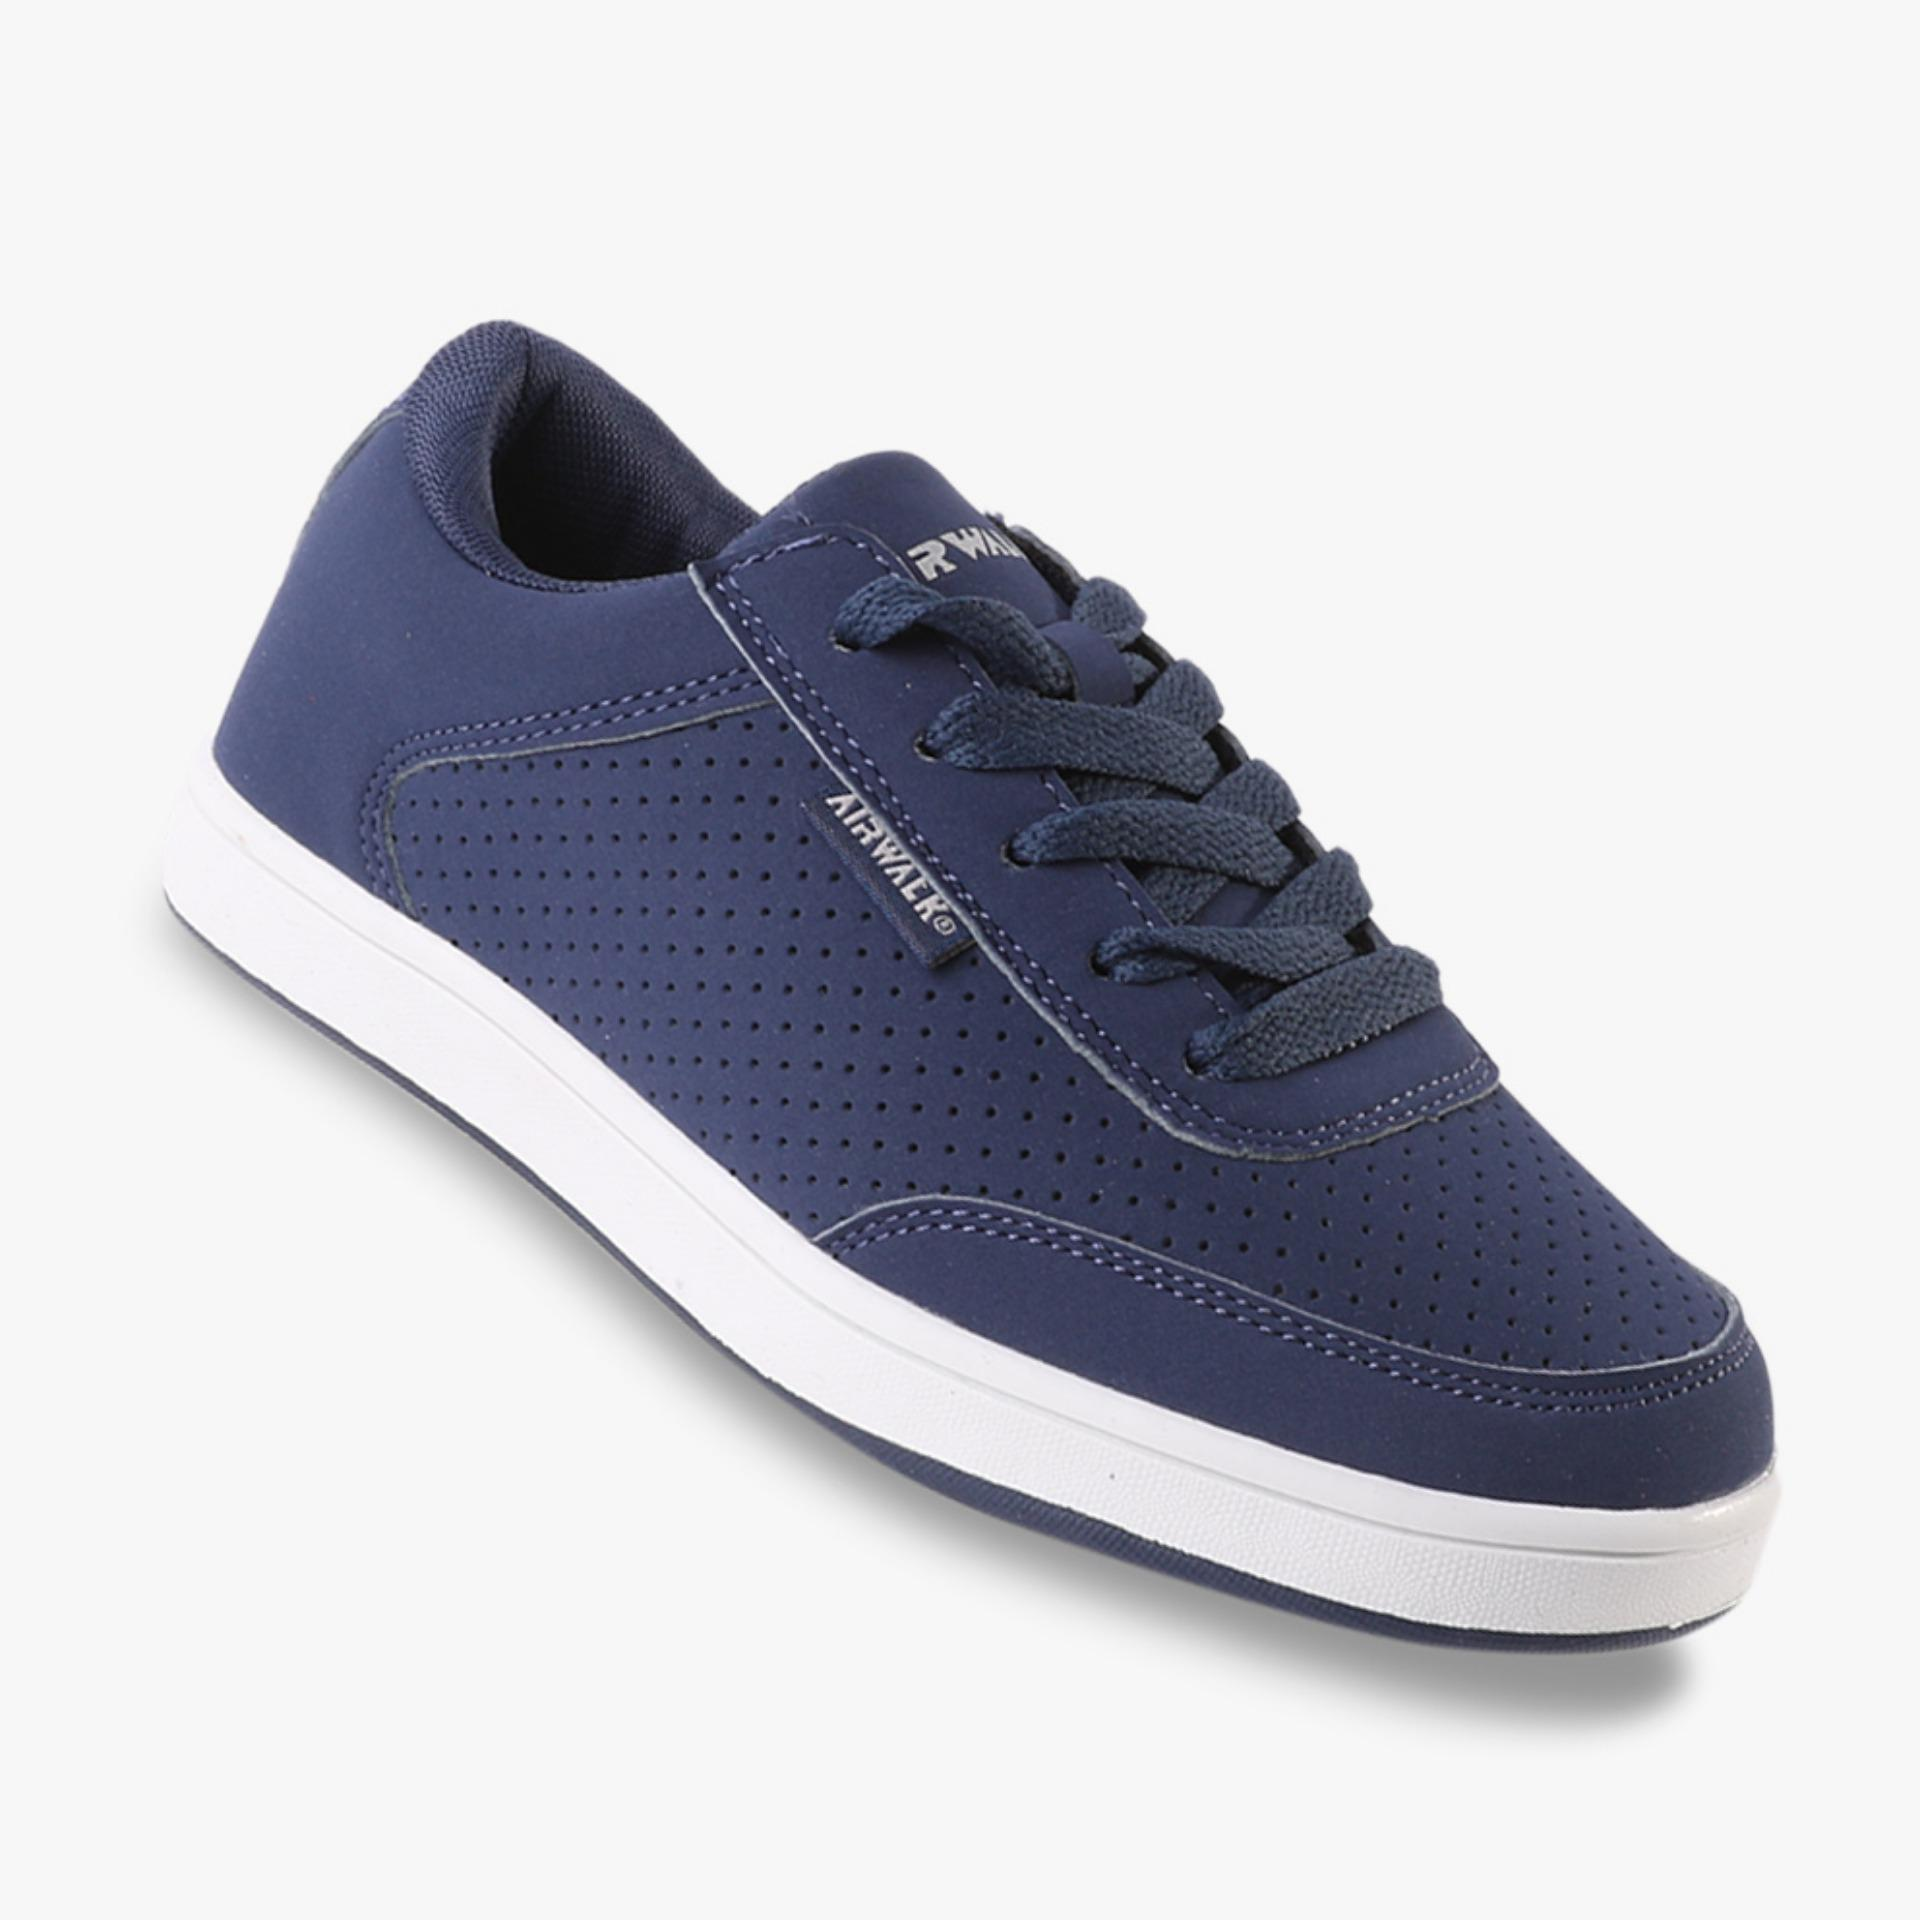 Jual Airwalk Jayce Jr Boys Sneakers Shoes Navy Branded